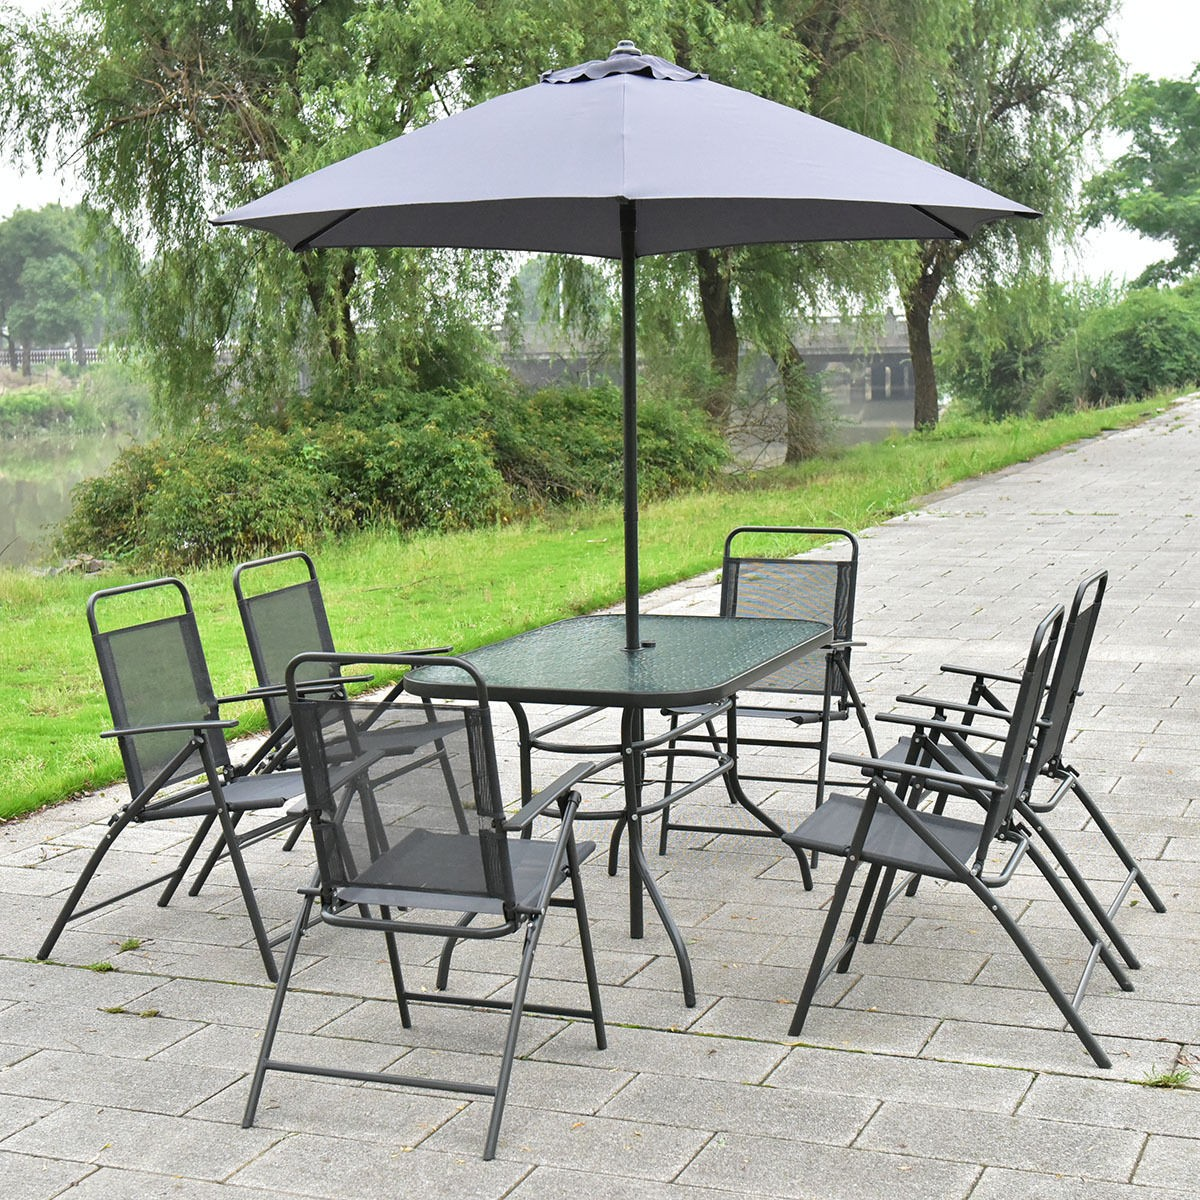 8 PCS Patio Garden Set Furniture 6 Folding Chairs Table With Umbrella Gray Ne